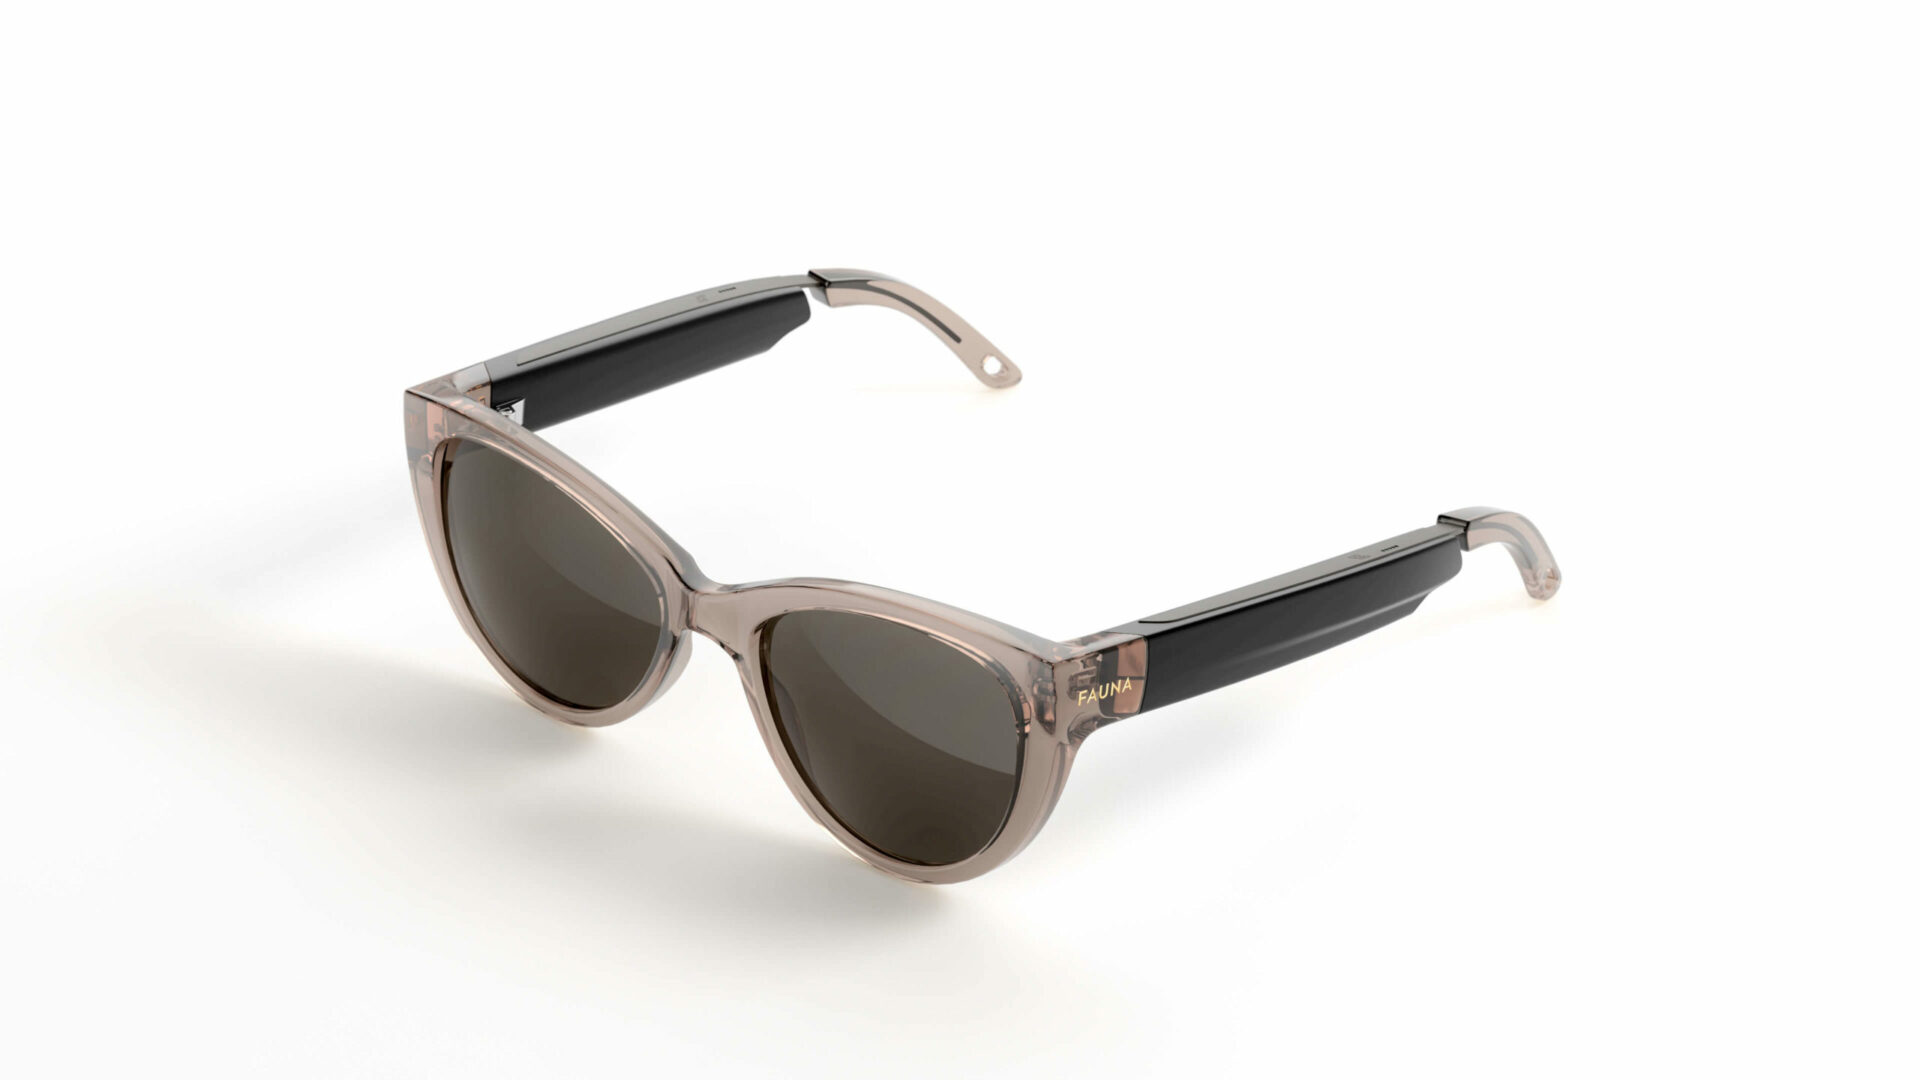 Fauna Fabula Crystal Brown music sunglasses